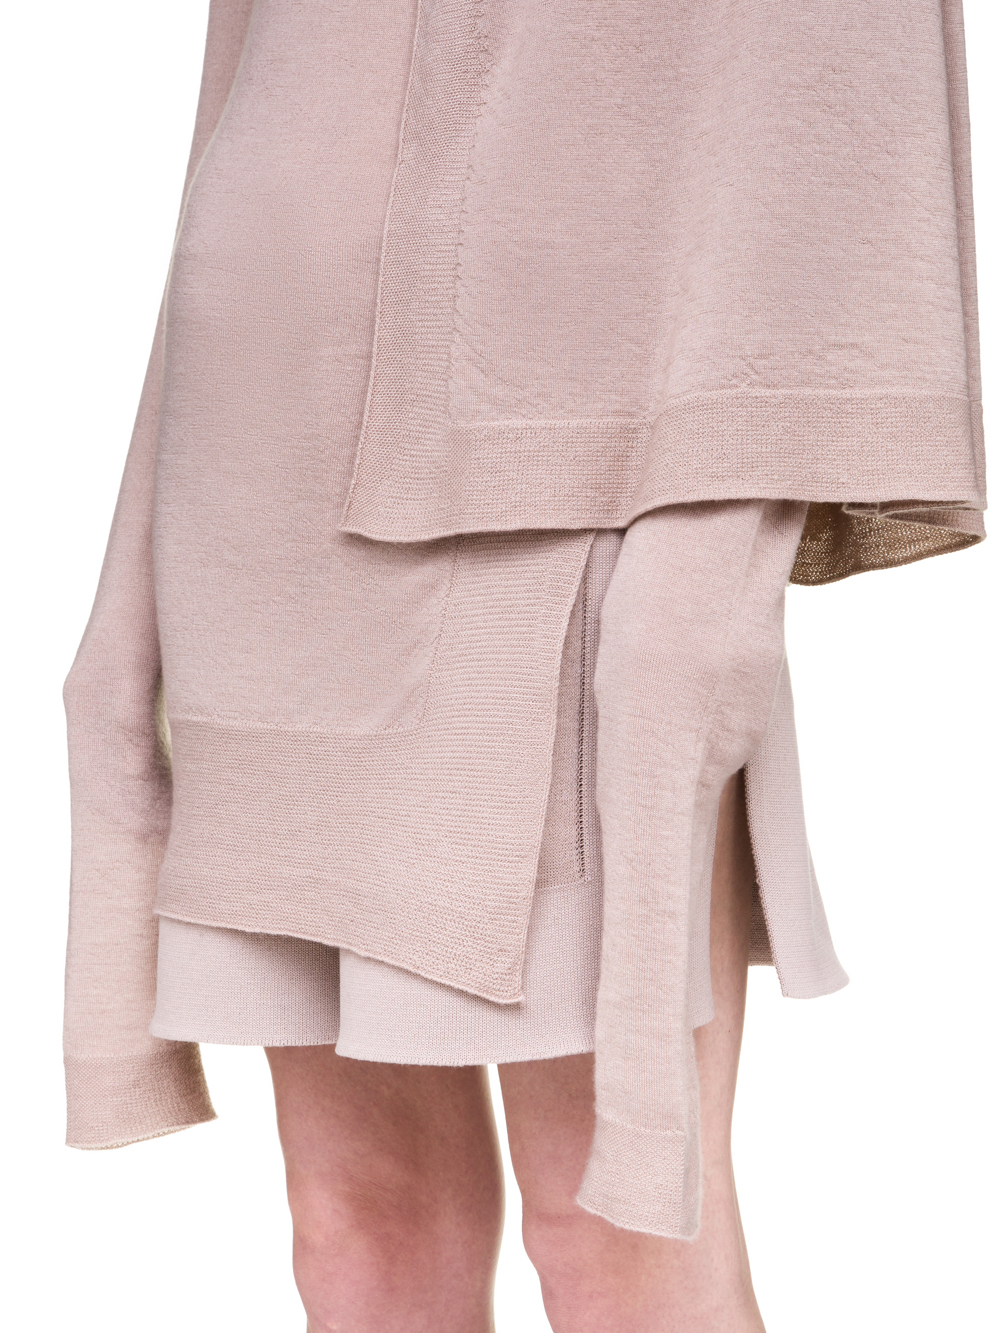 RICK OWENS OFF-THE-RUNWAY CAPE TUNIC IN PETAL PINK S